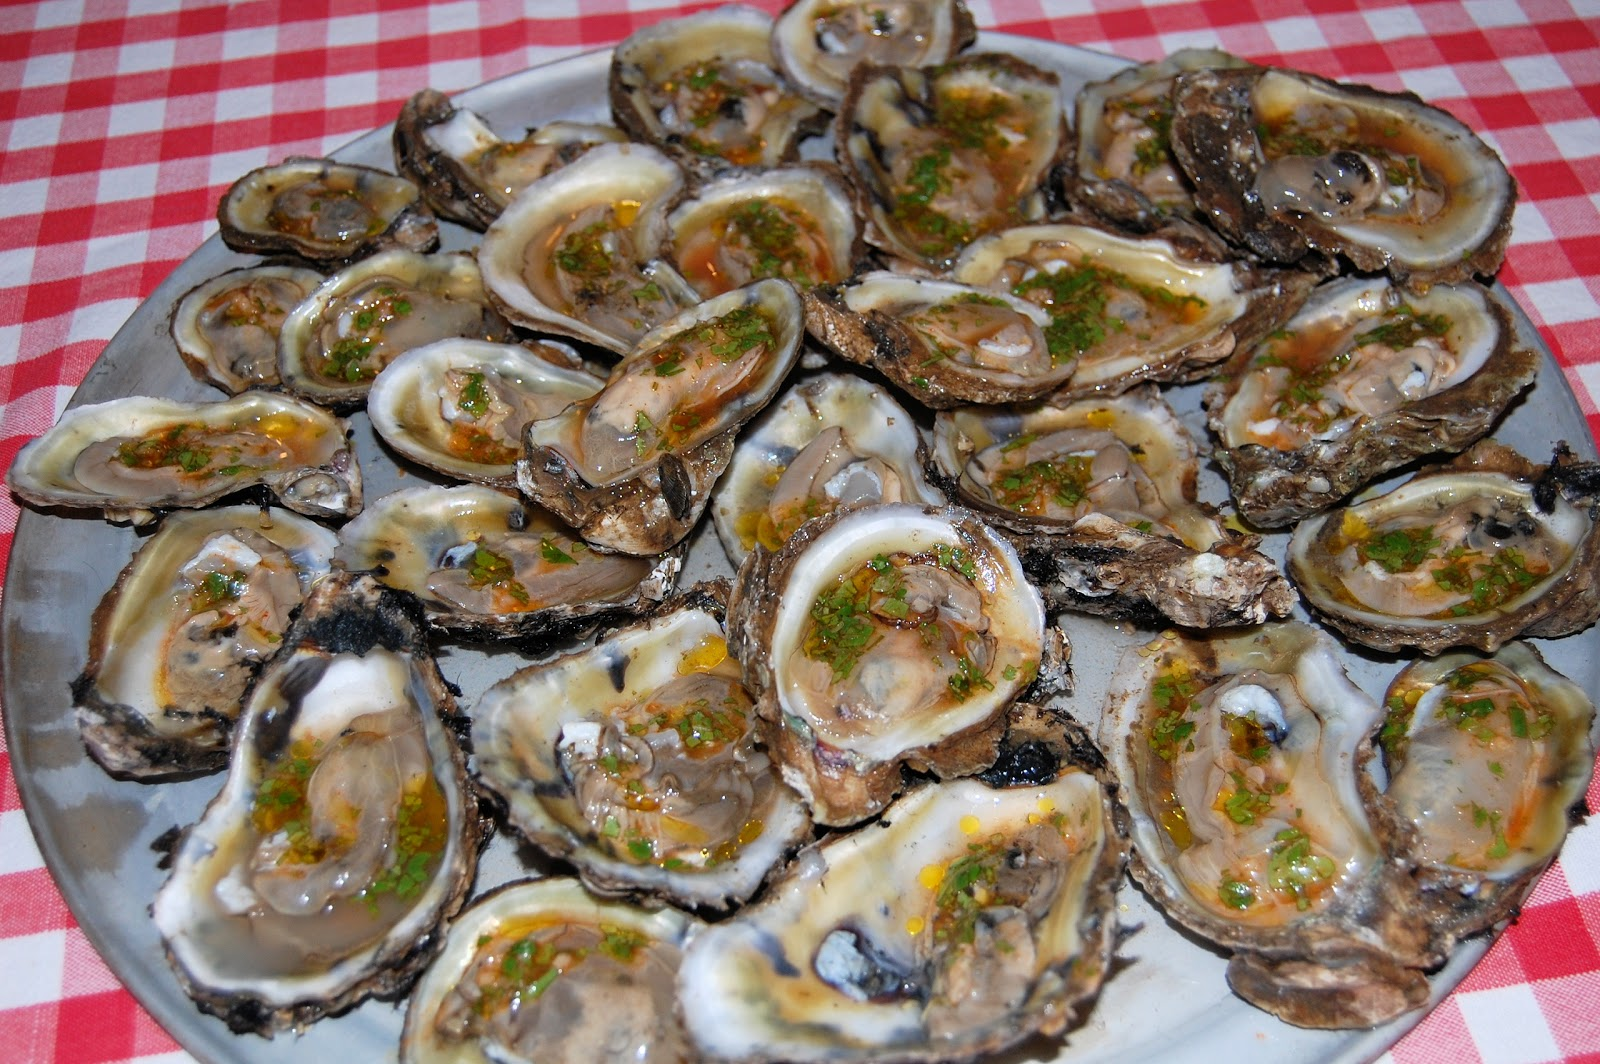 Grilled Oysters with Chipotle Chermoula | We Like to Cook!